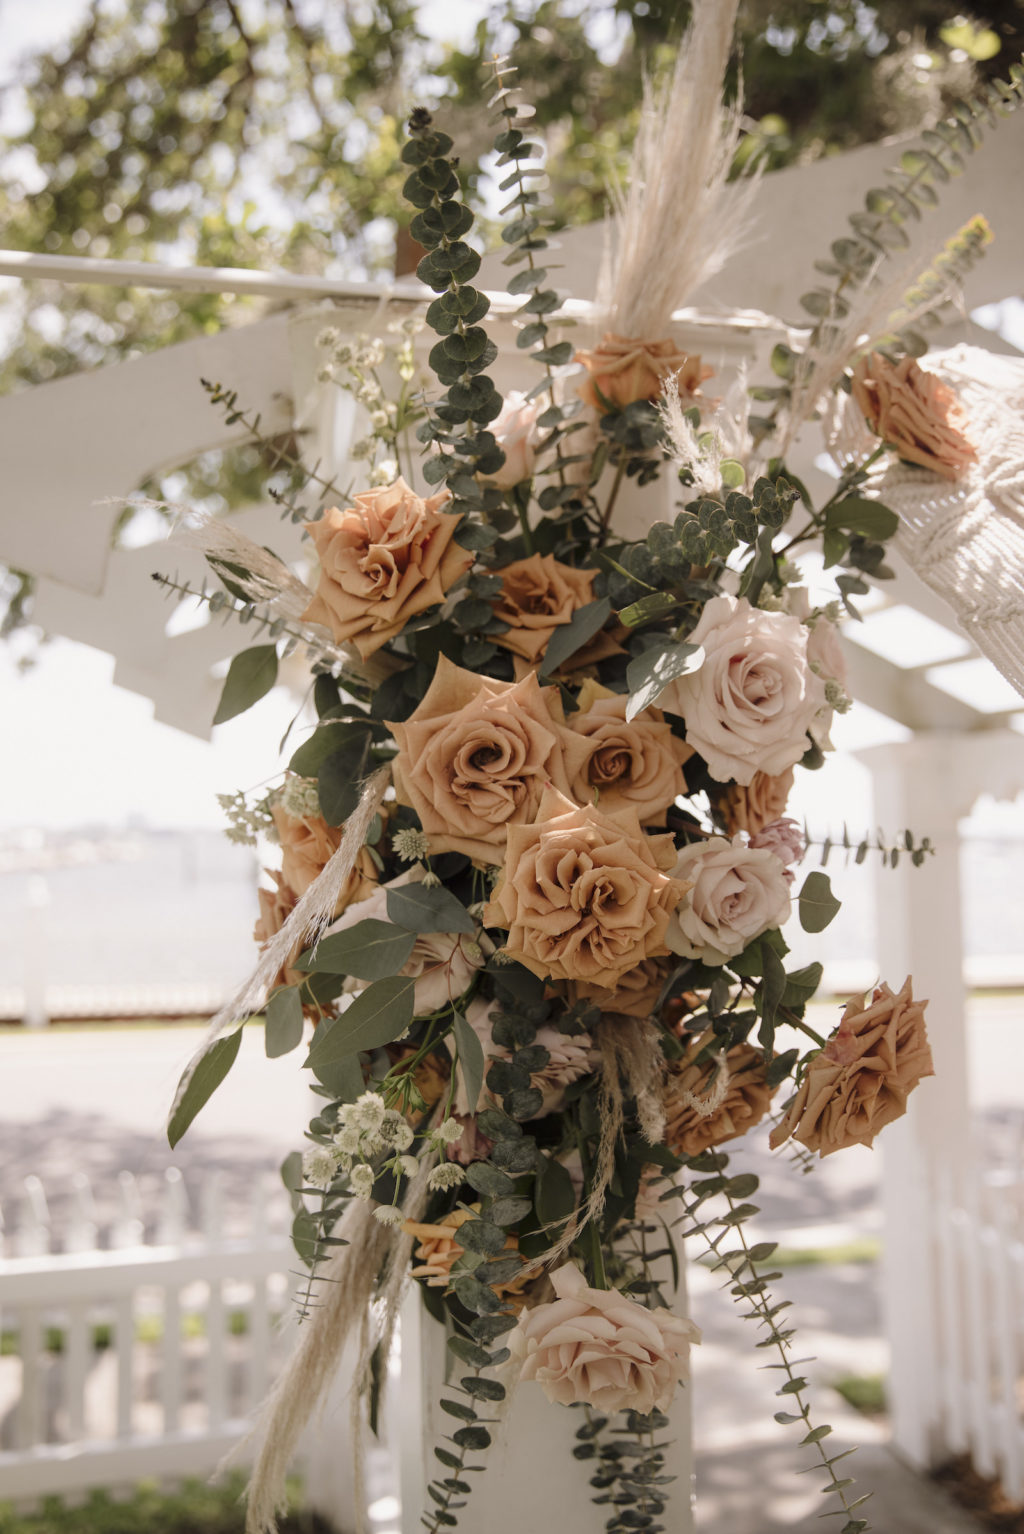 Neutral Cream and Burnt Orange Rose Detail on Wedding Alter with Mixed Greenery and Pampas Leaves   Boho Florida Waterfront Wedding Ceremony